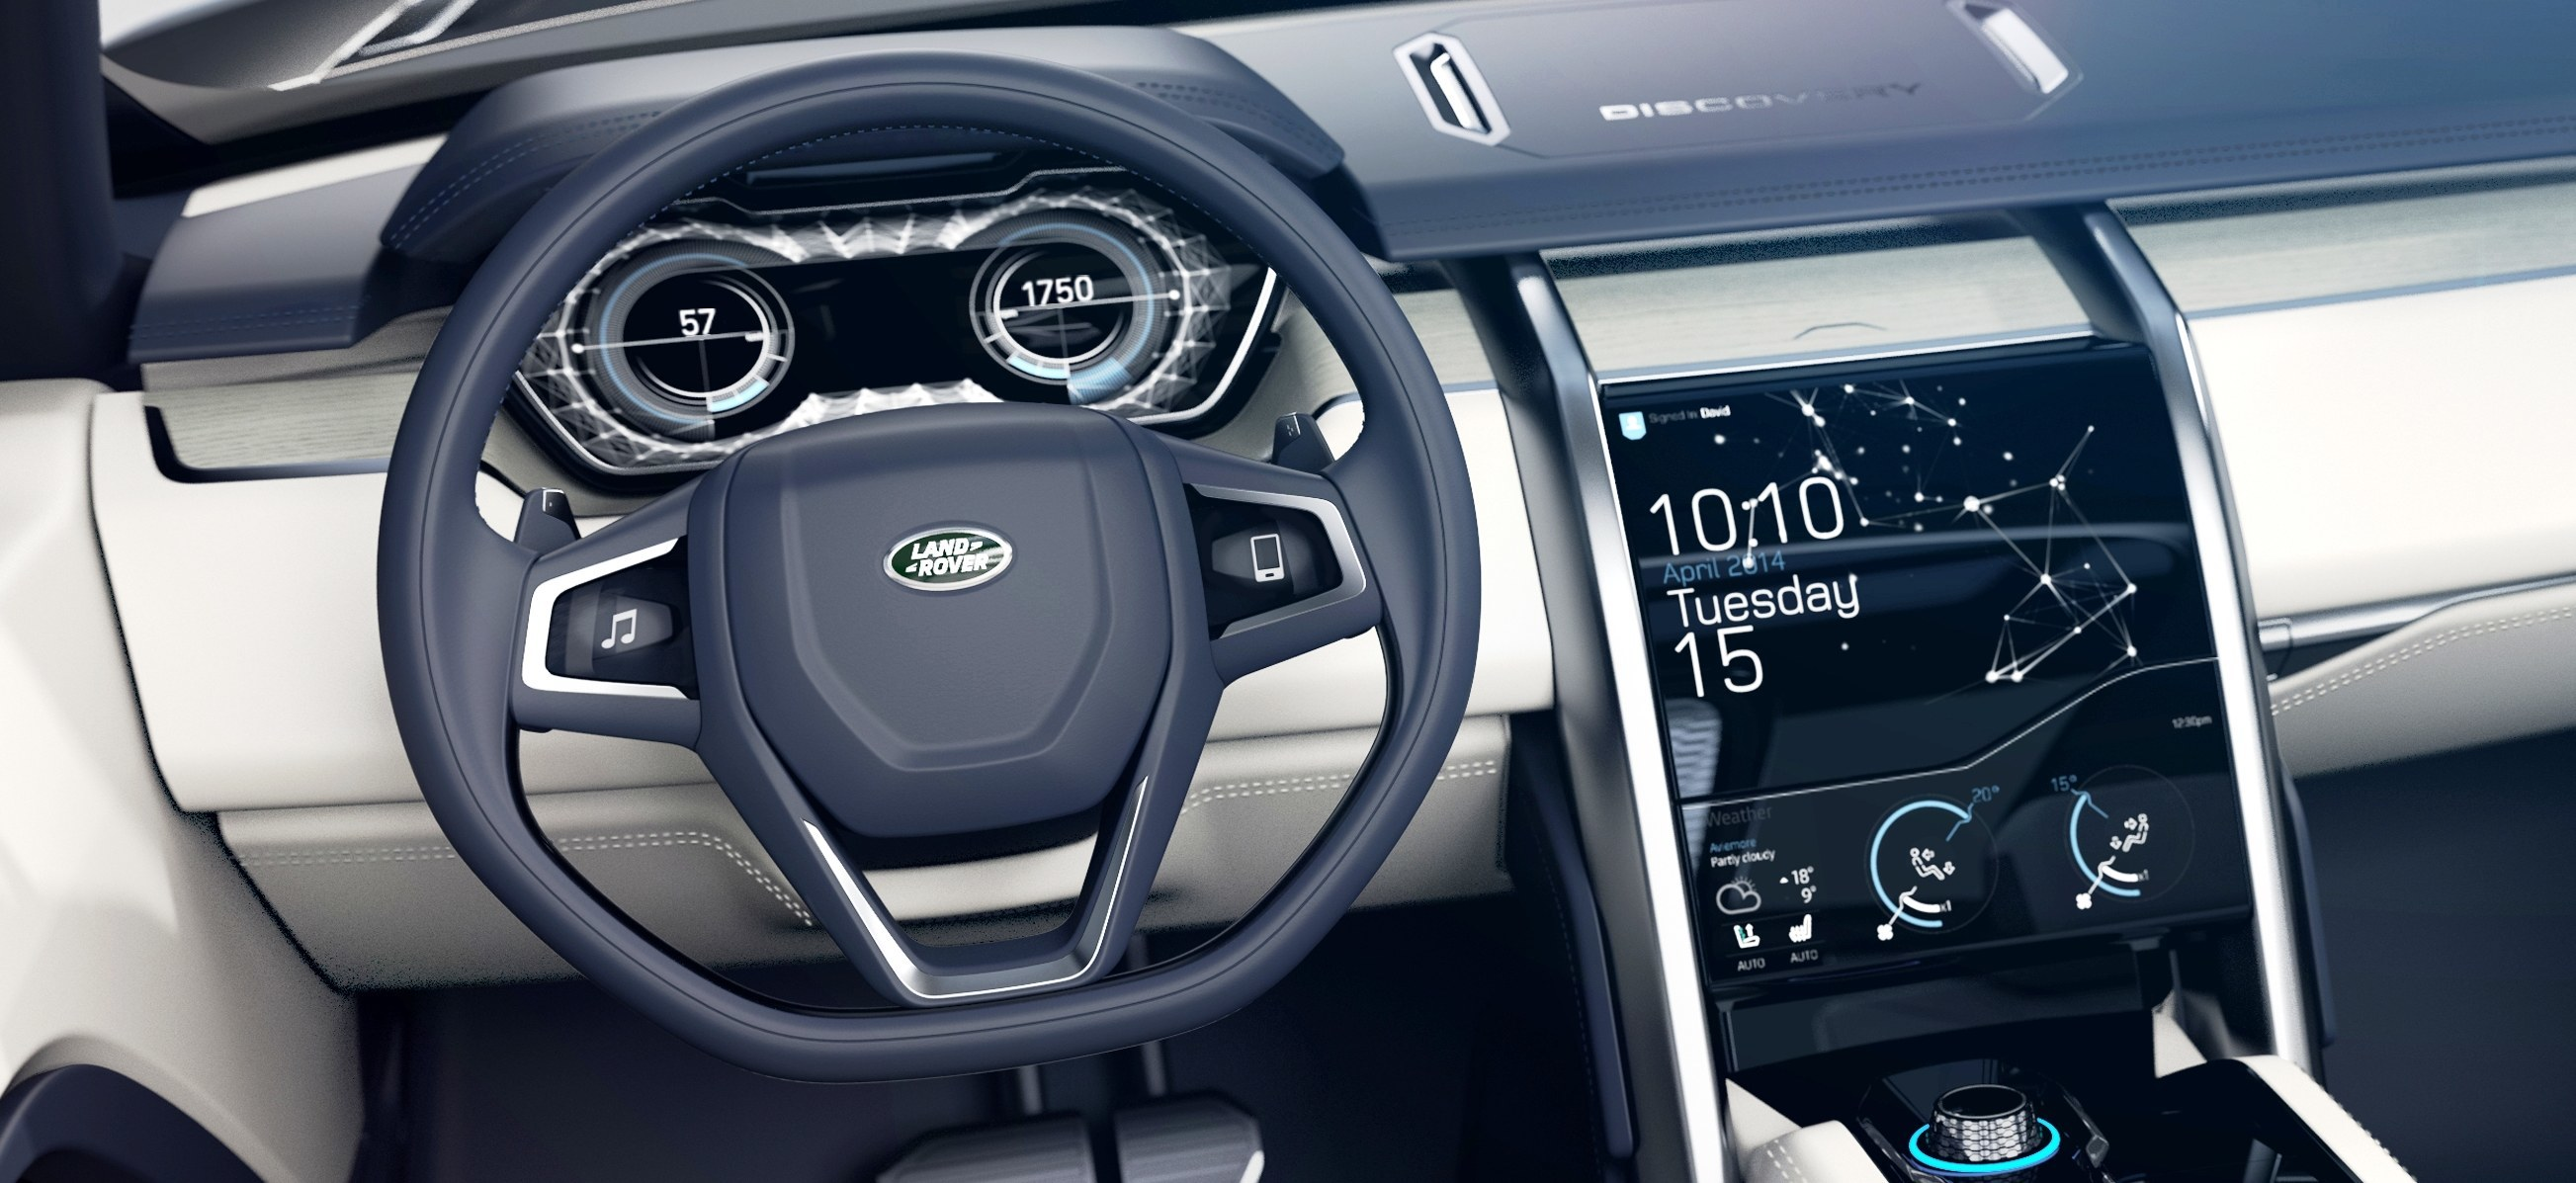 land rover 2015 lr4 interior. click to open largest resolution image land rover 2015 lr4 interior